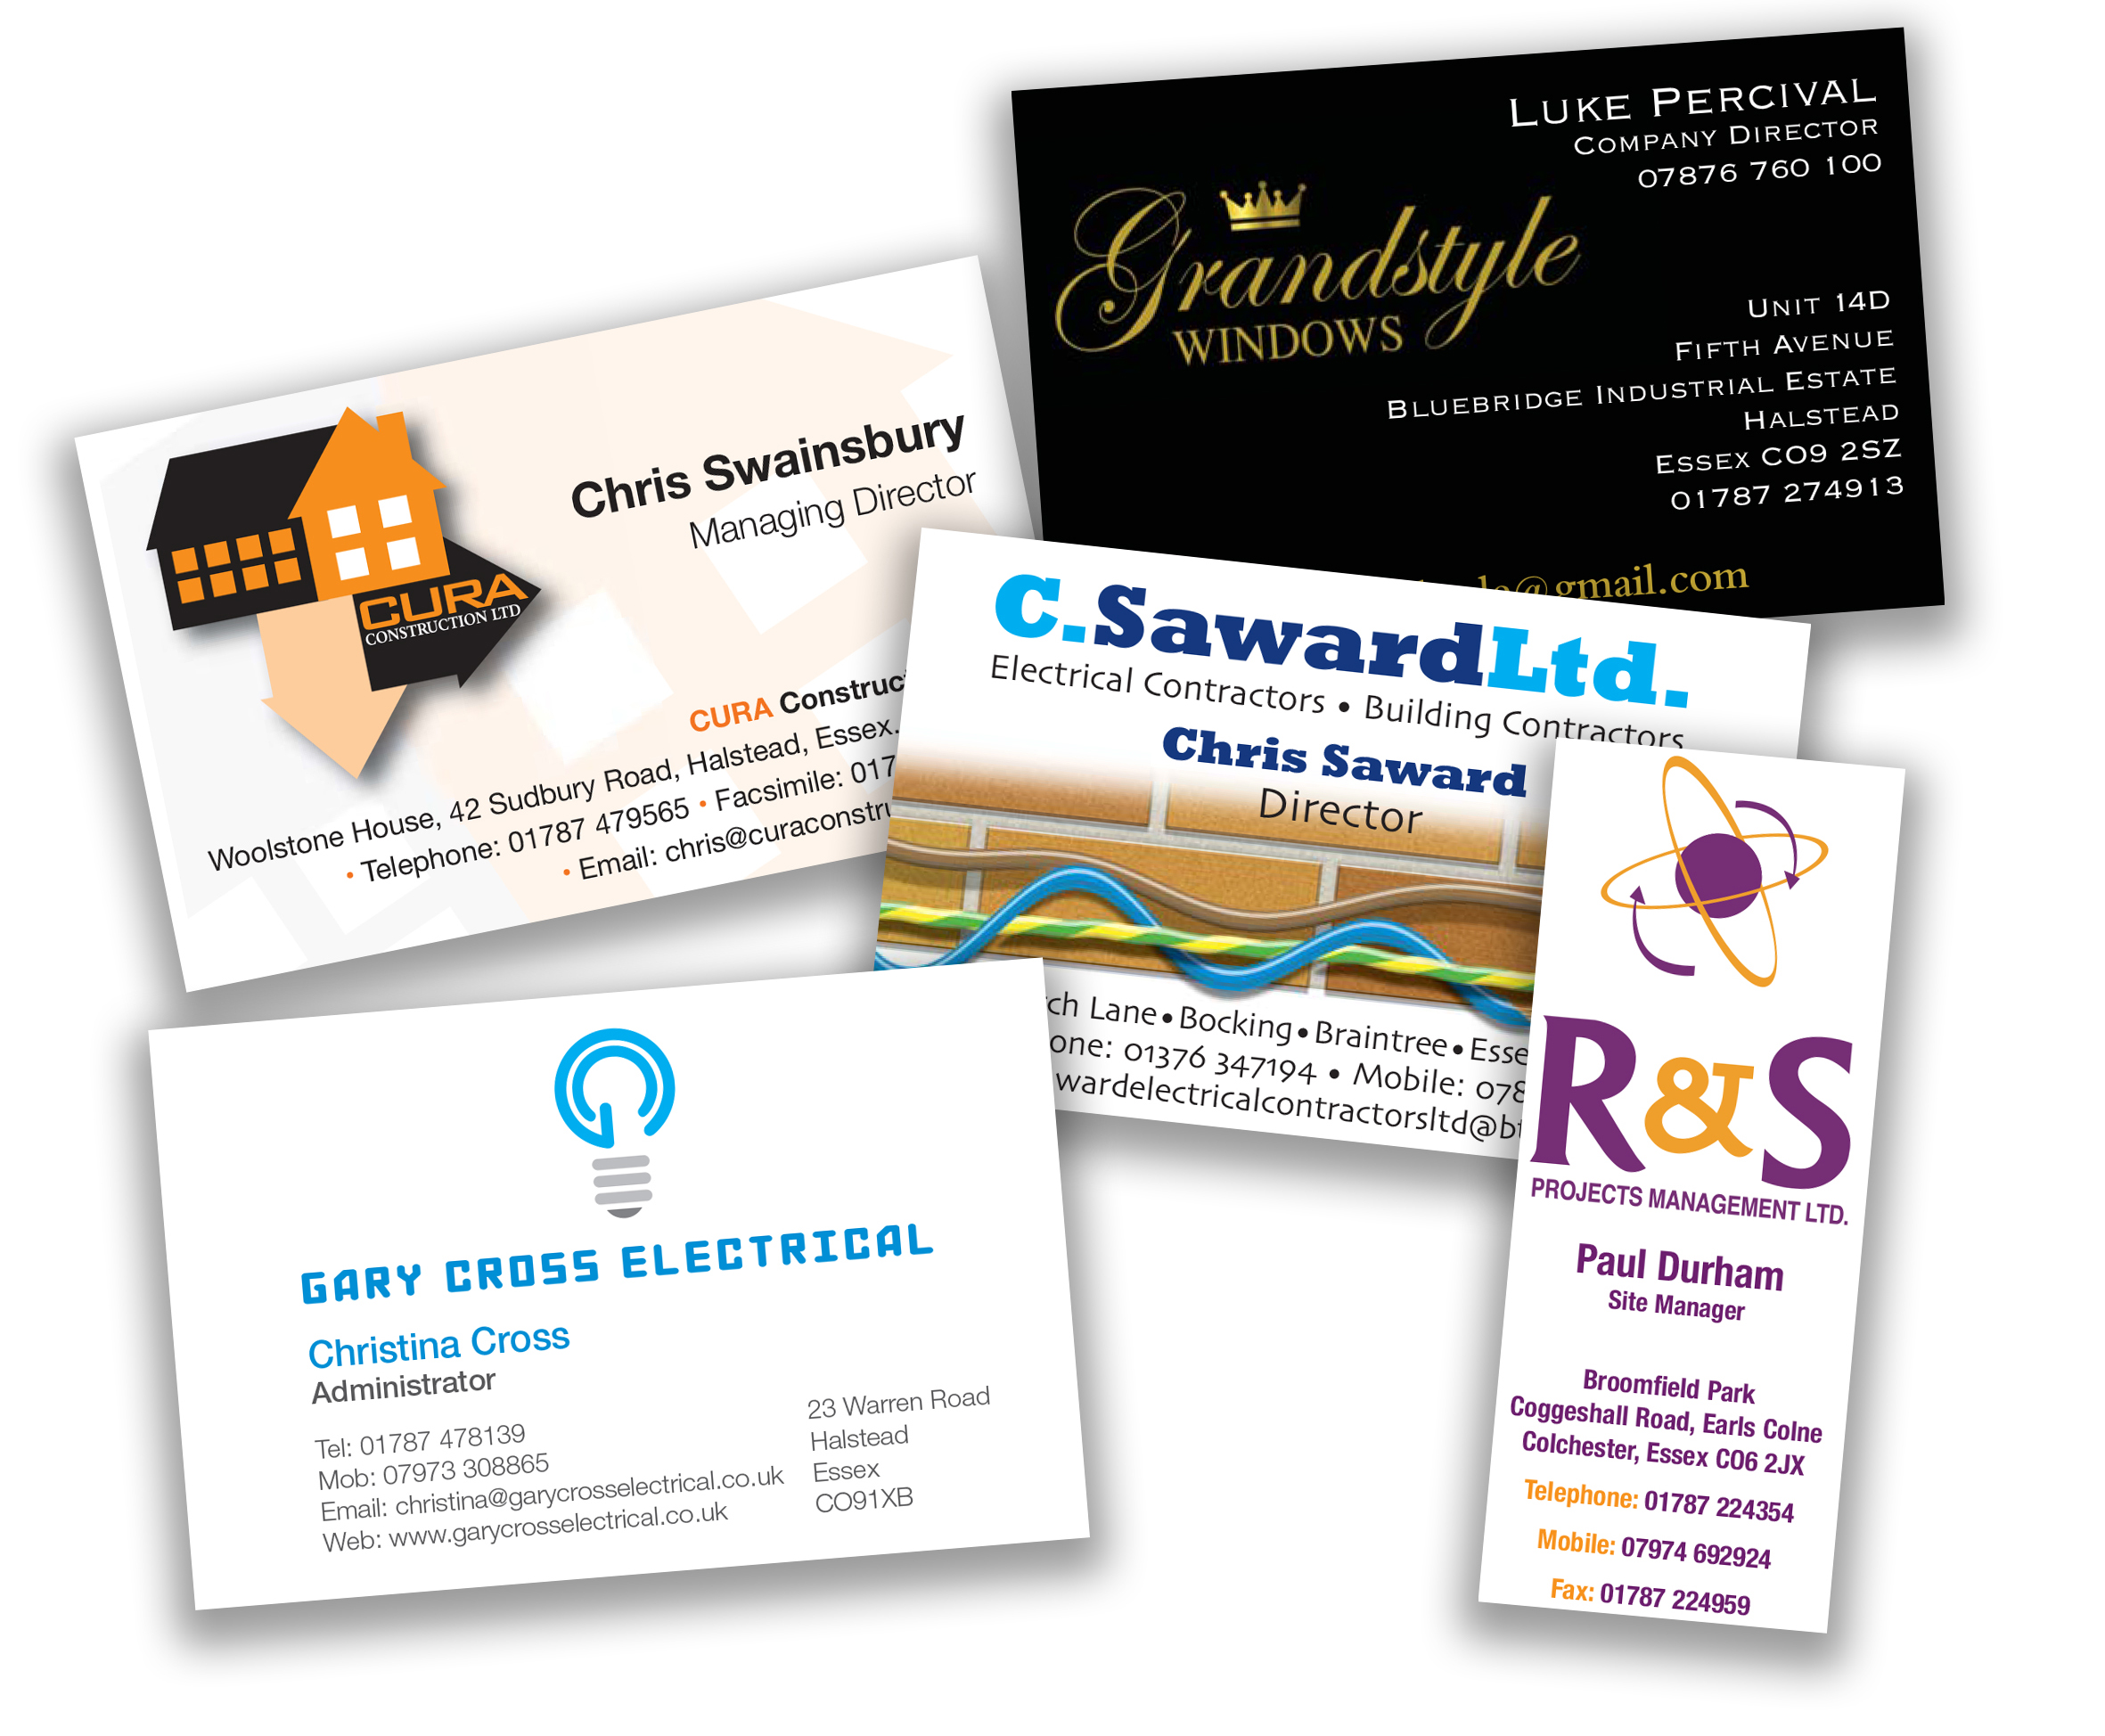 Business card printing and design fm design print contact us for your free no obligation business card quotation reheart Images